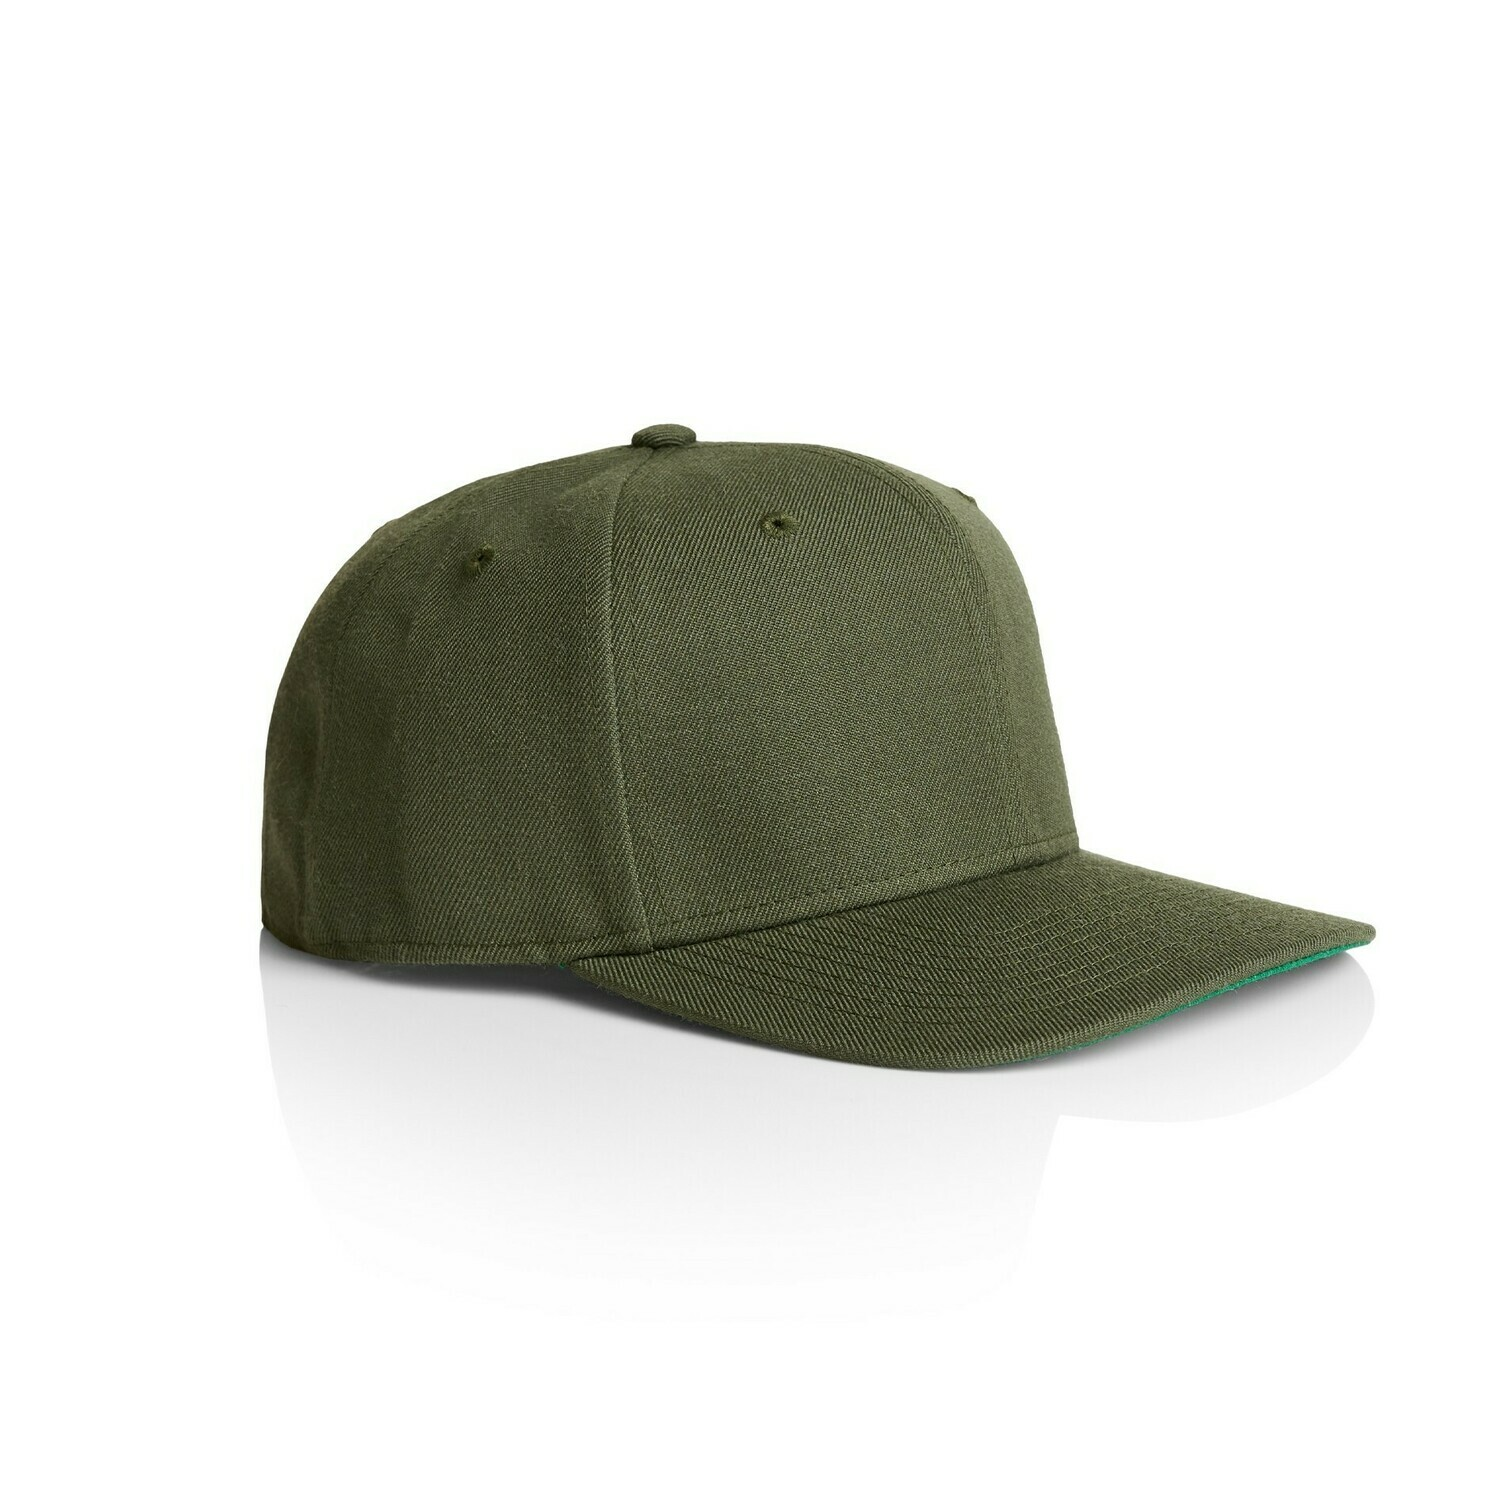 Trim Snap Back Cap